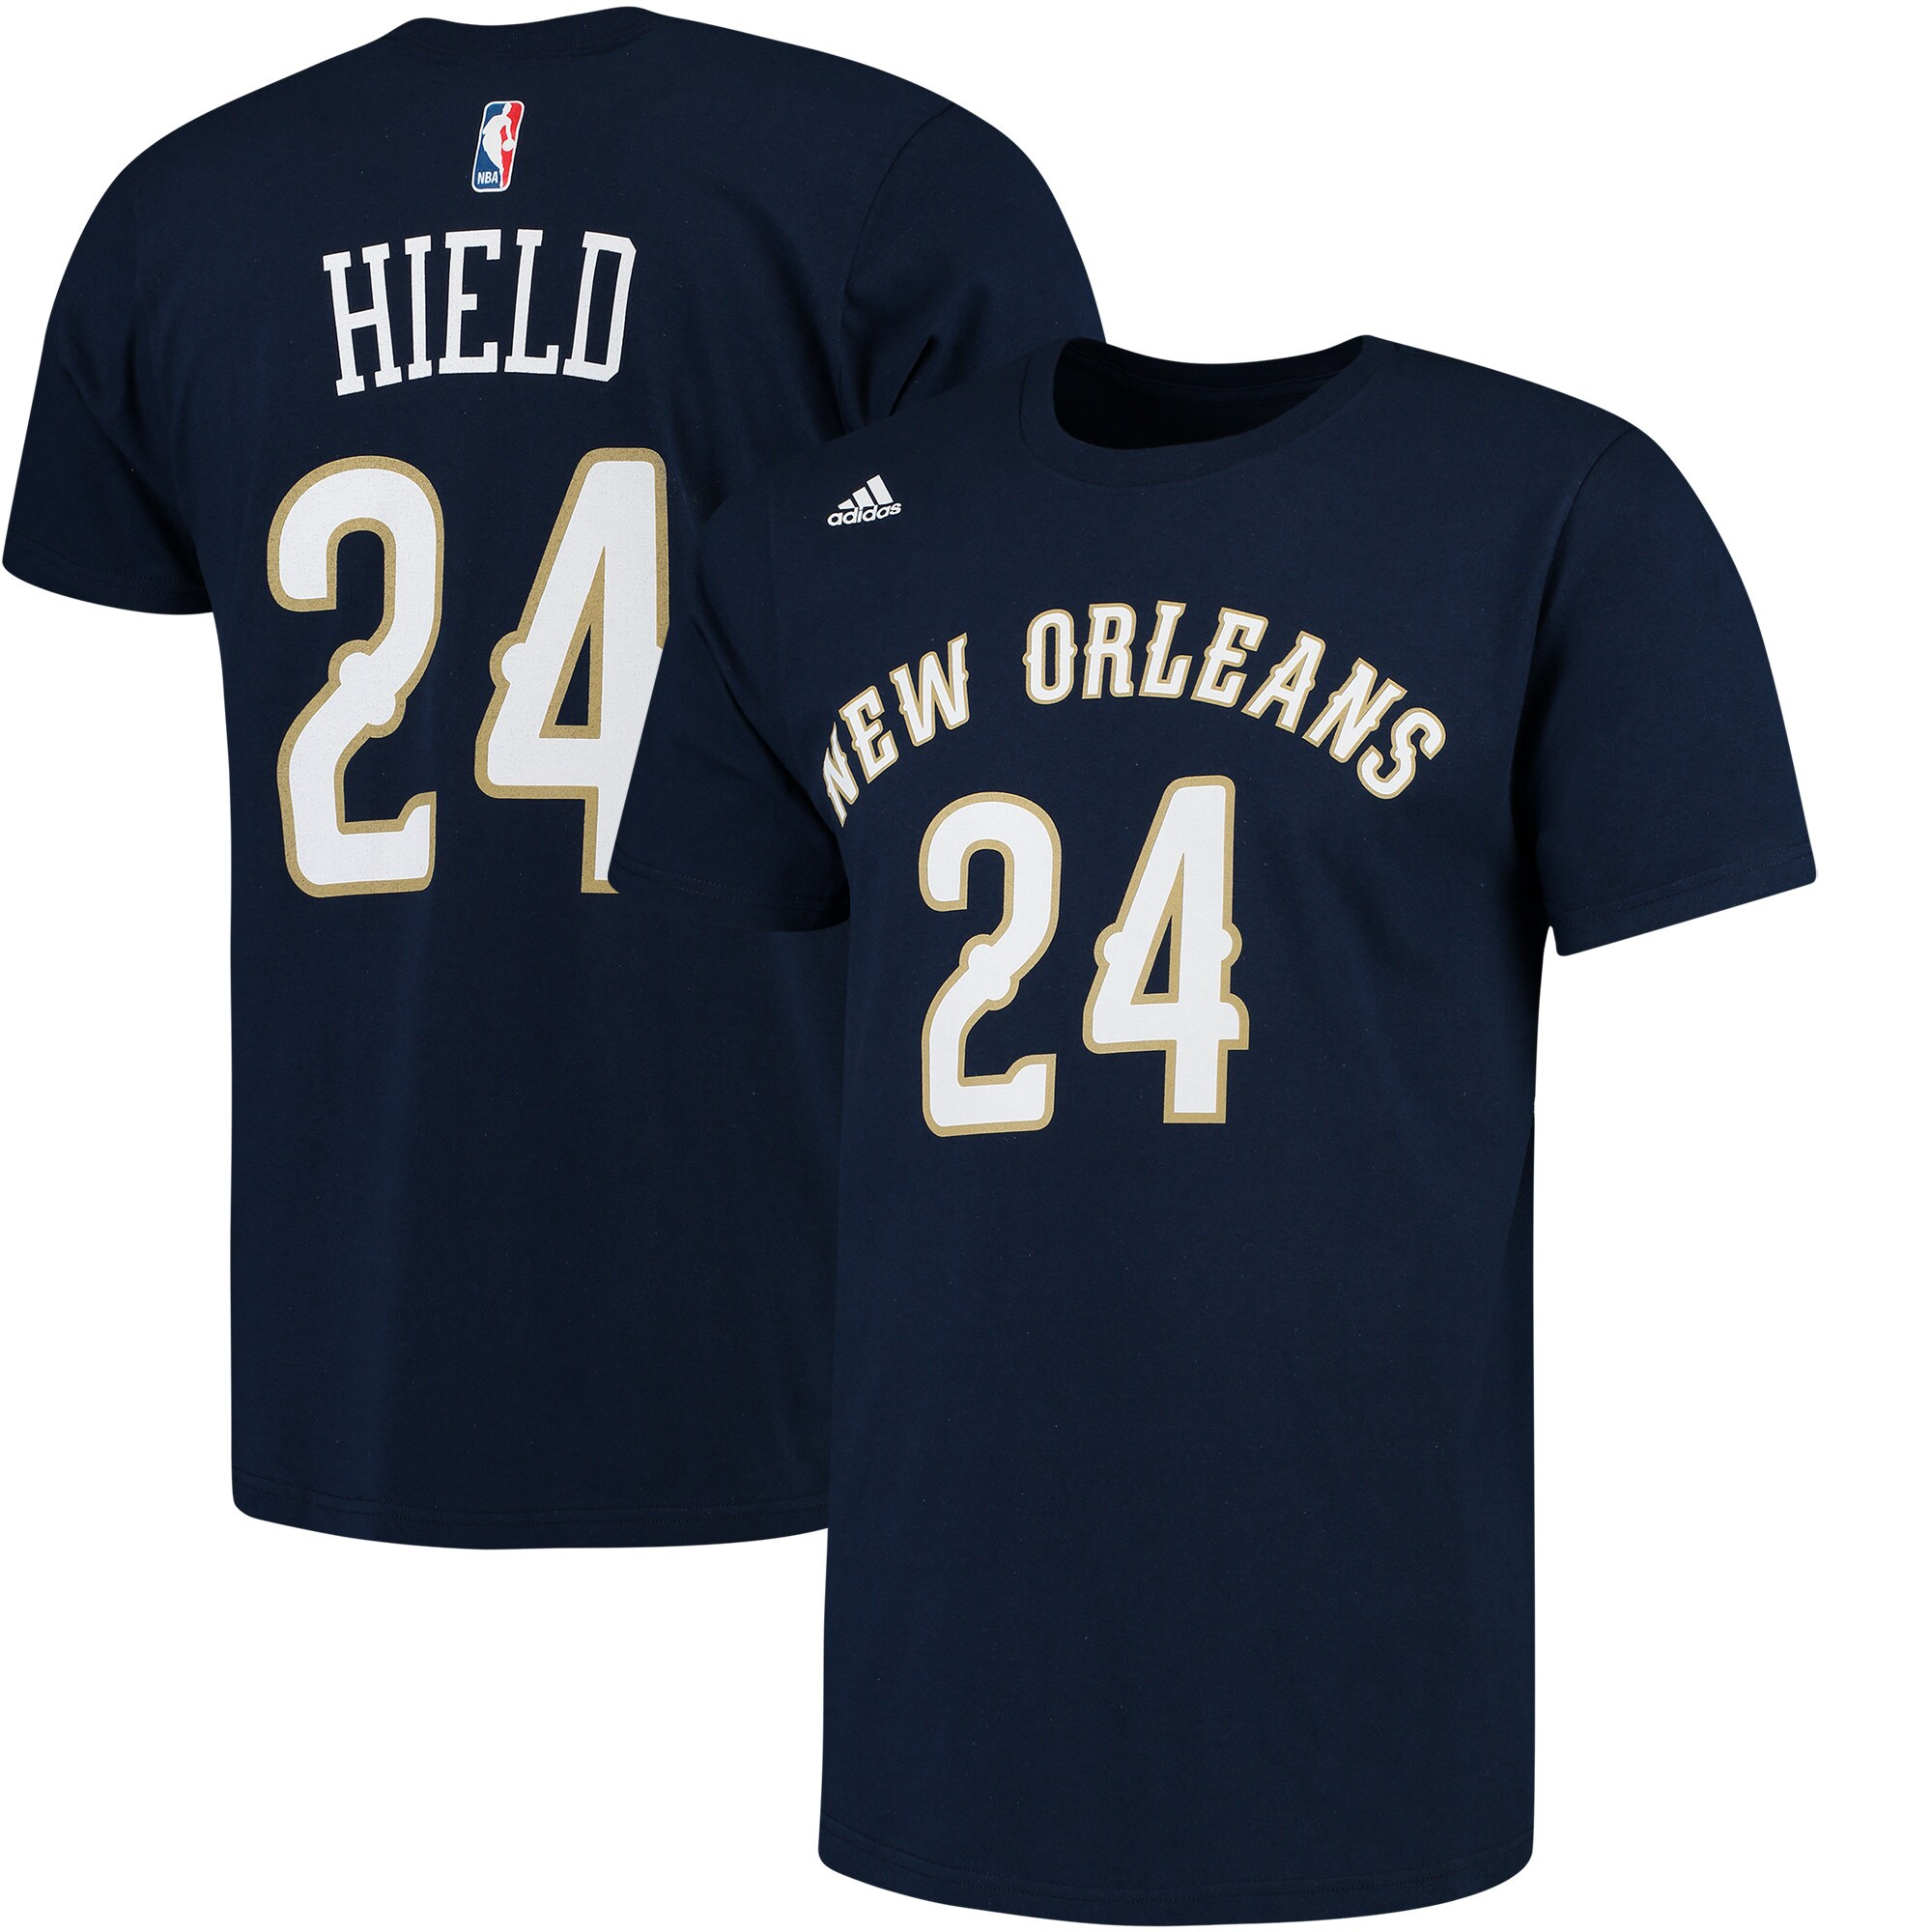 Buddy Hield New Orleans Pelicans adidas Net Number T-Shirt - Navy